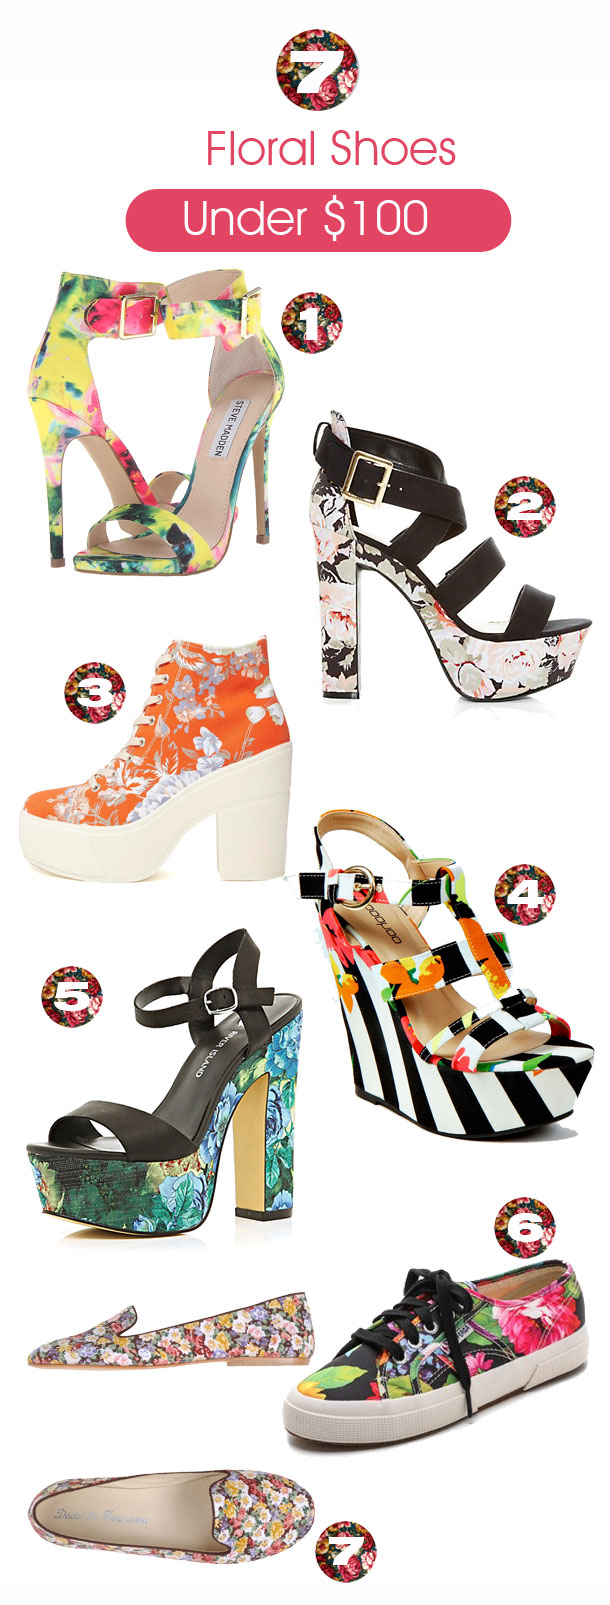 7-floral-shoes-for-spring-under-100-dollar